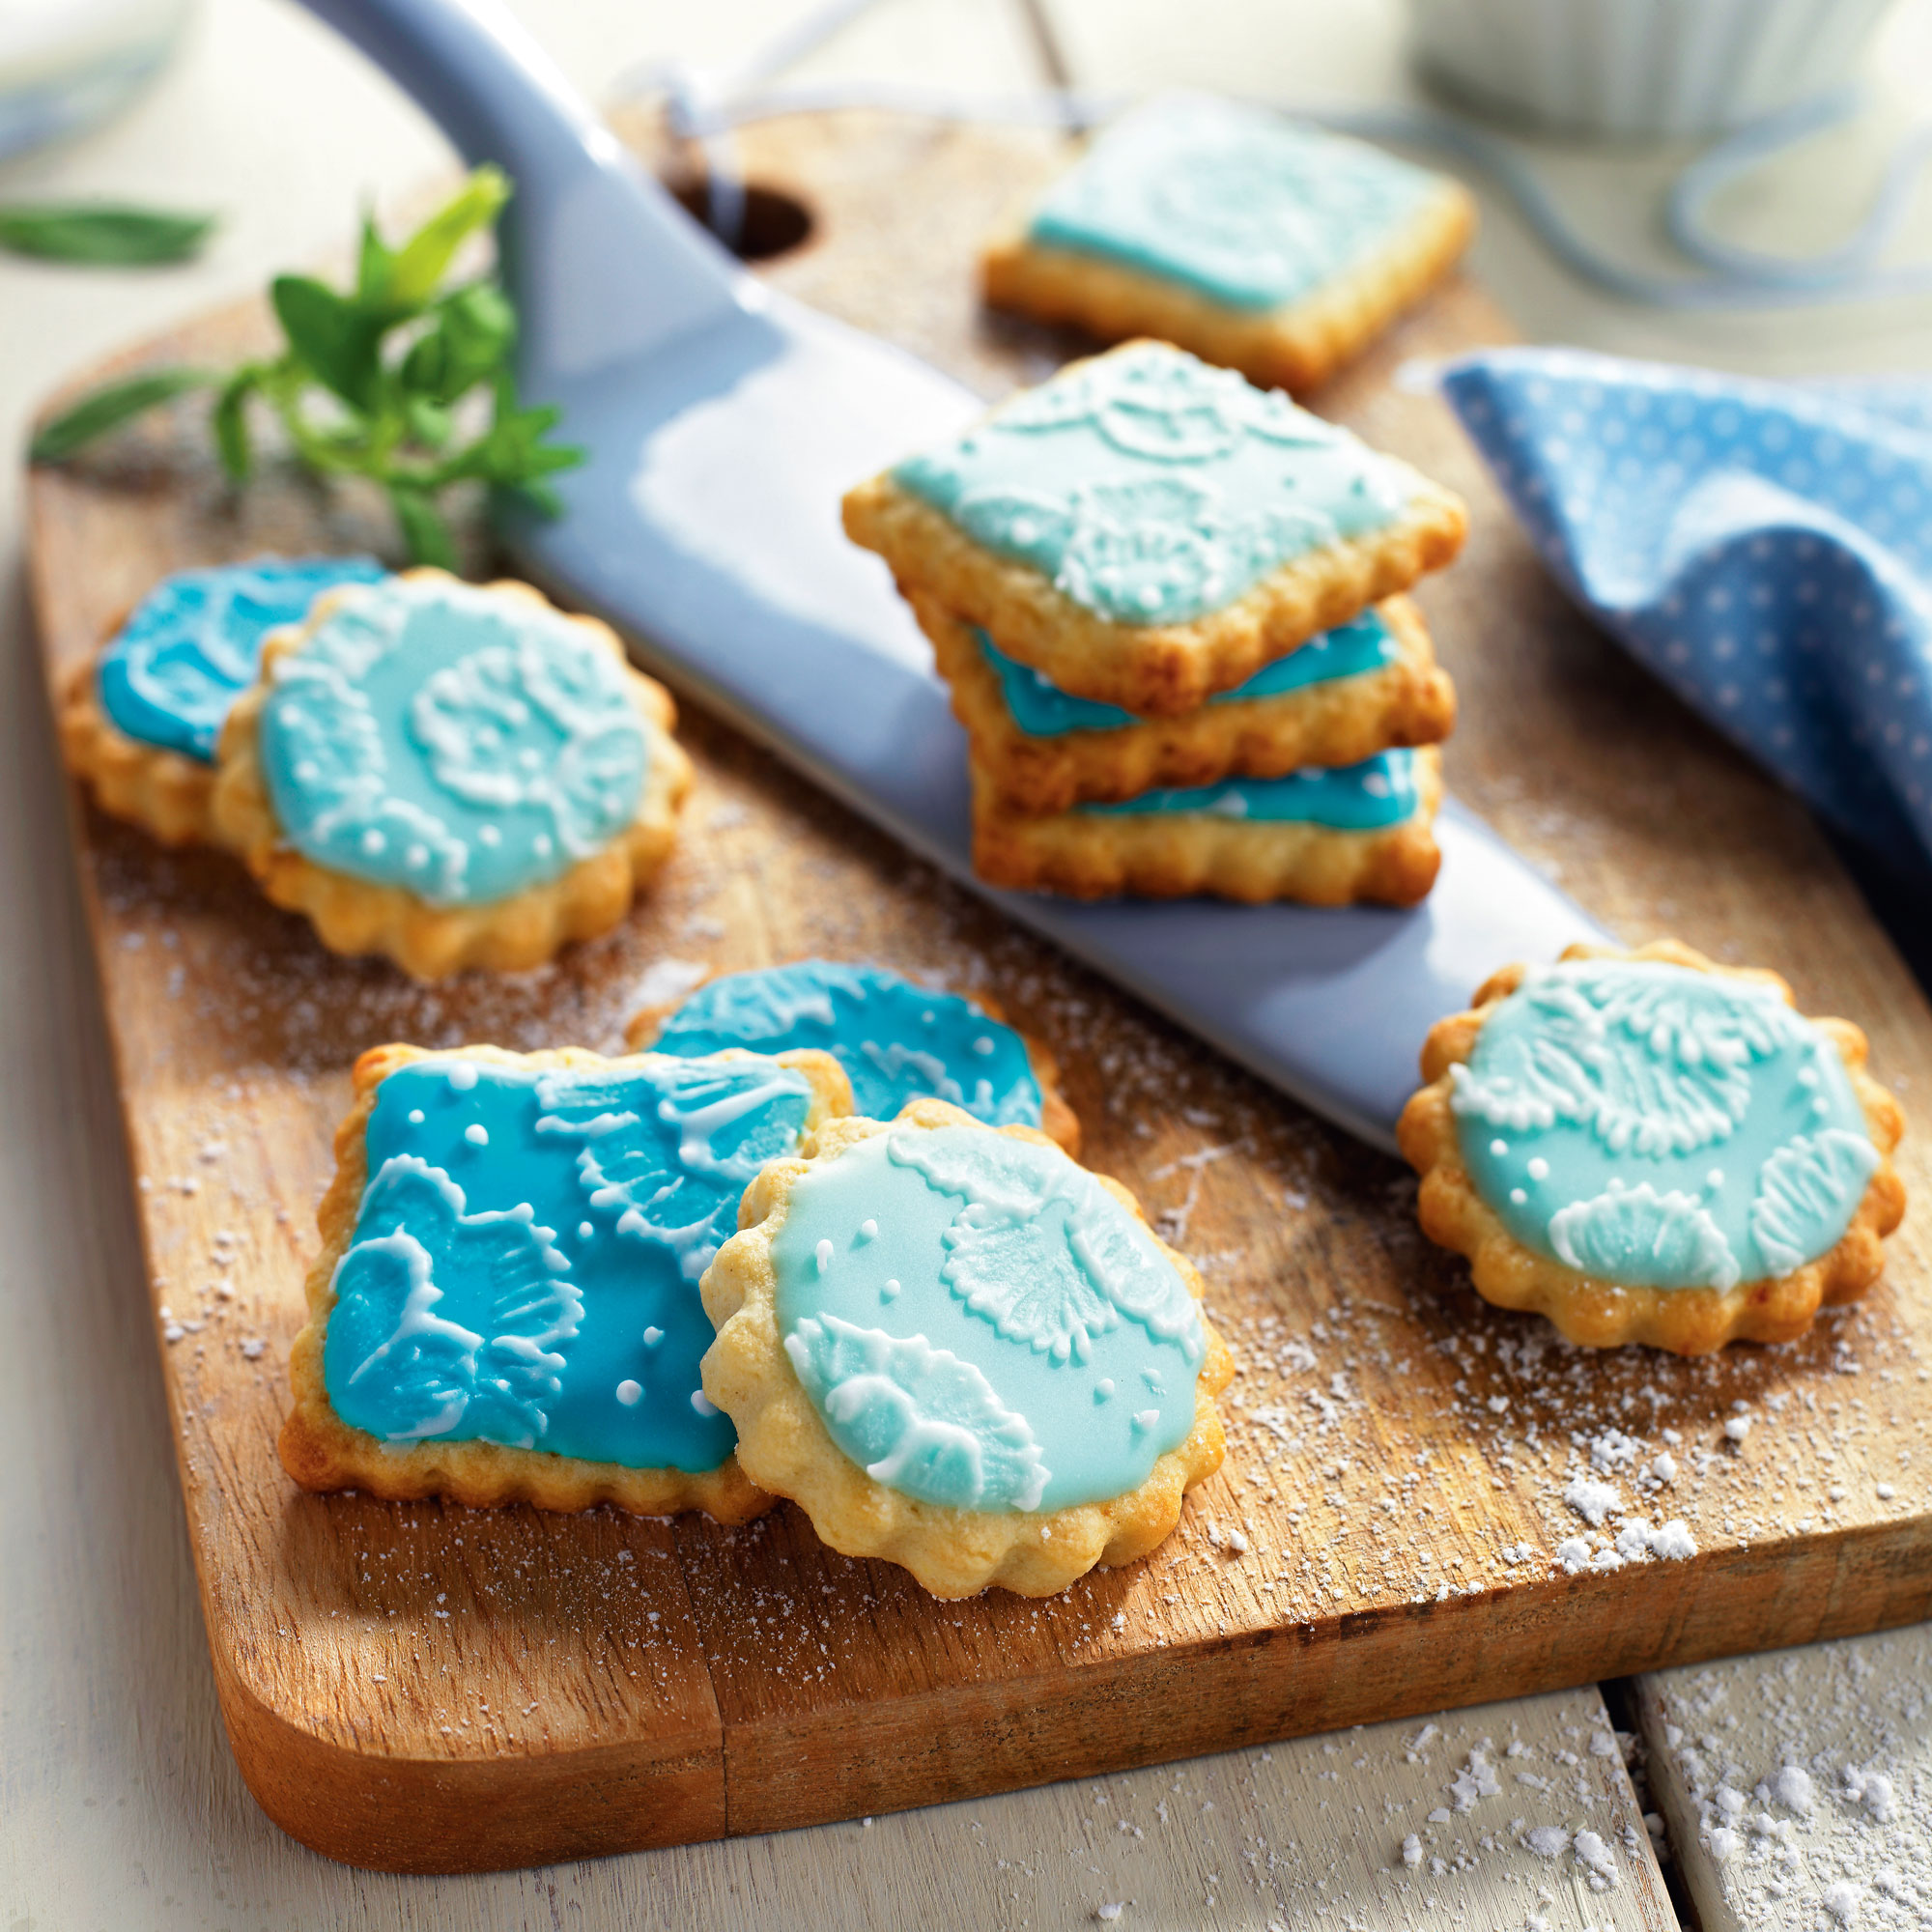 00383792b. Galletas decoradas con glasa azul. 00383792b